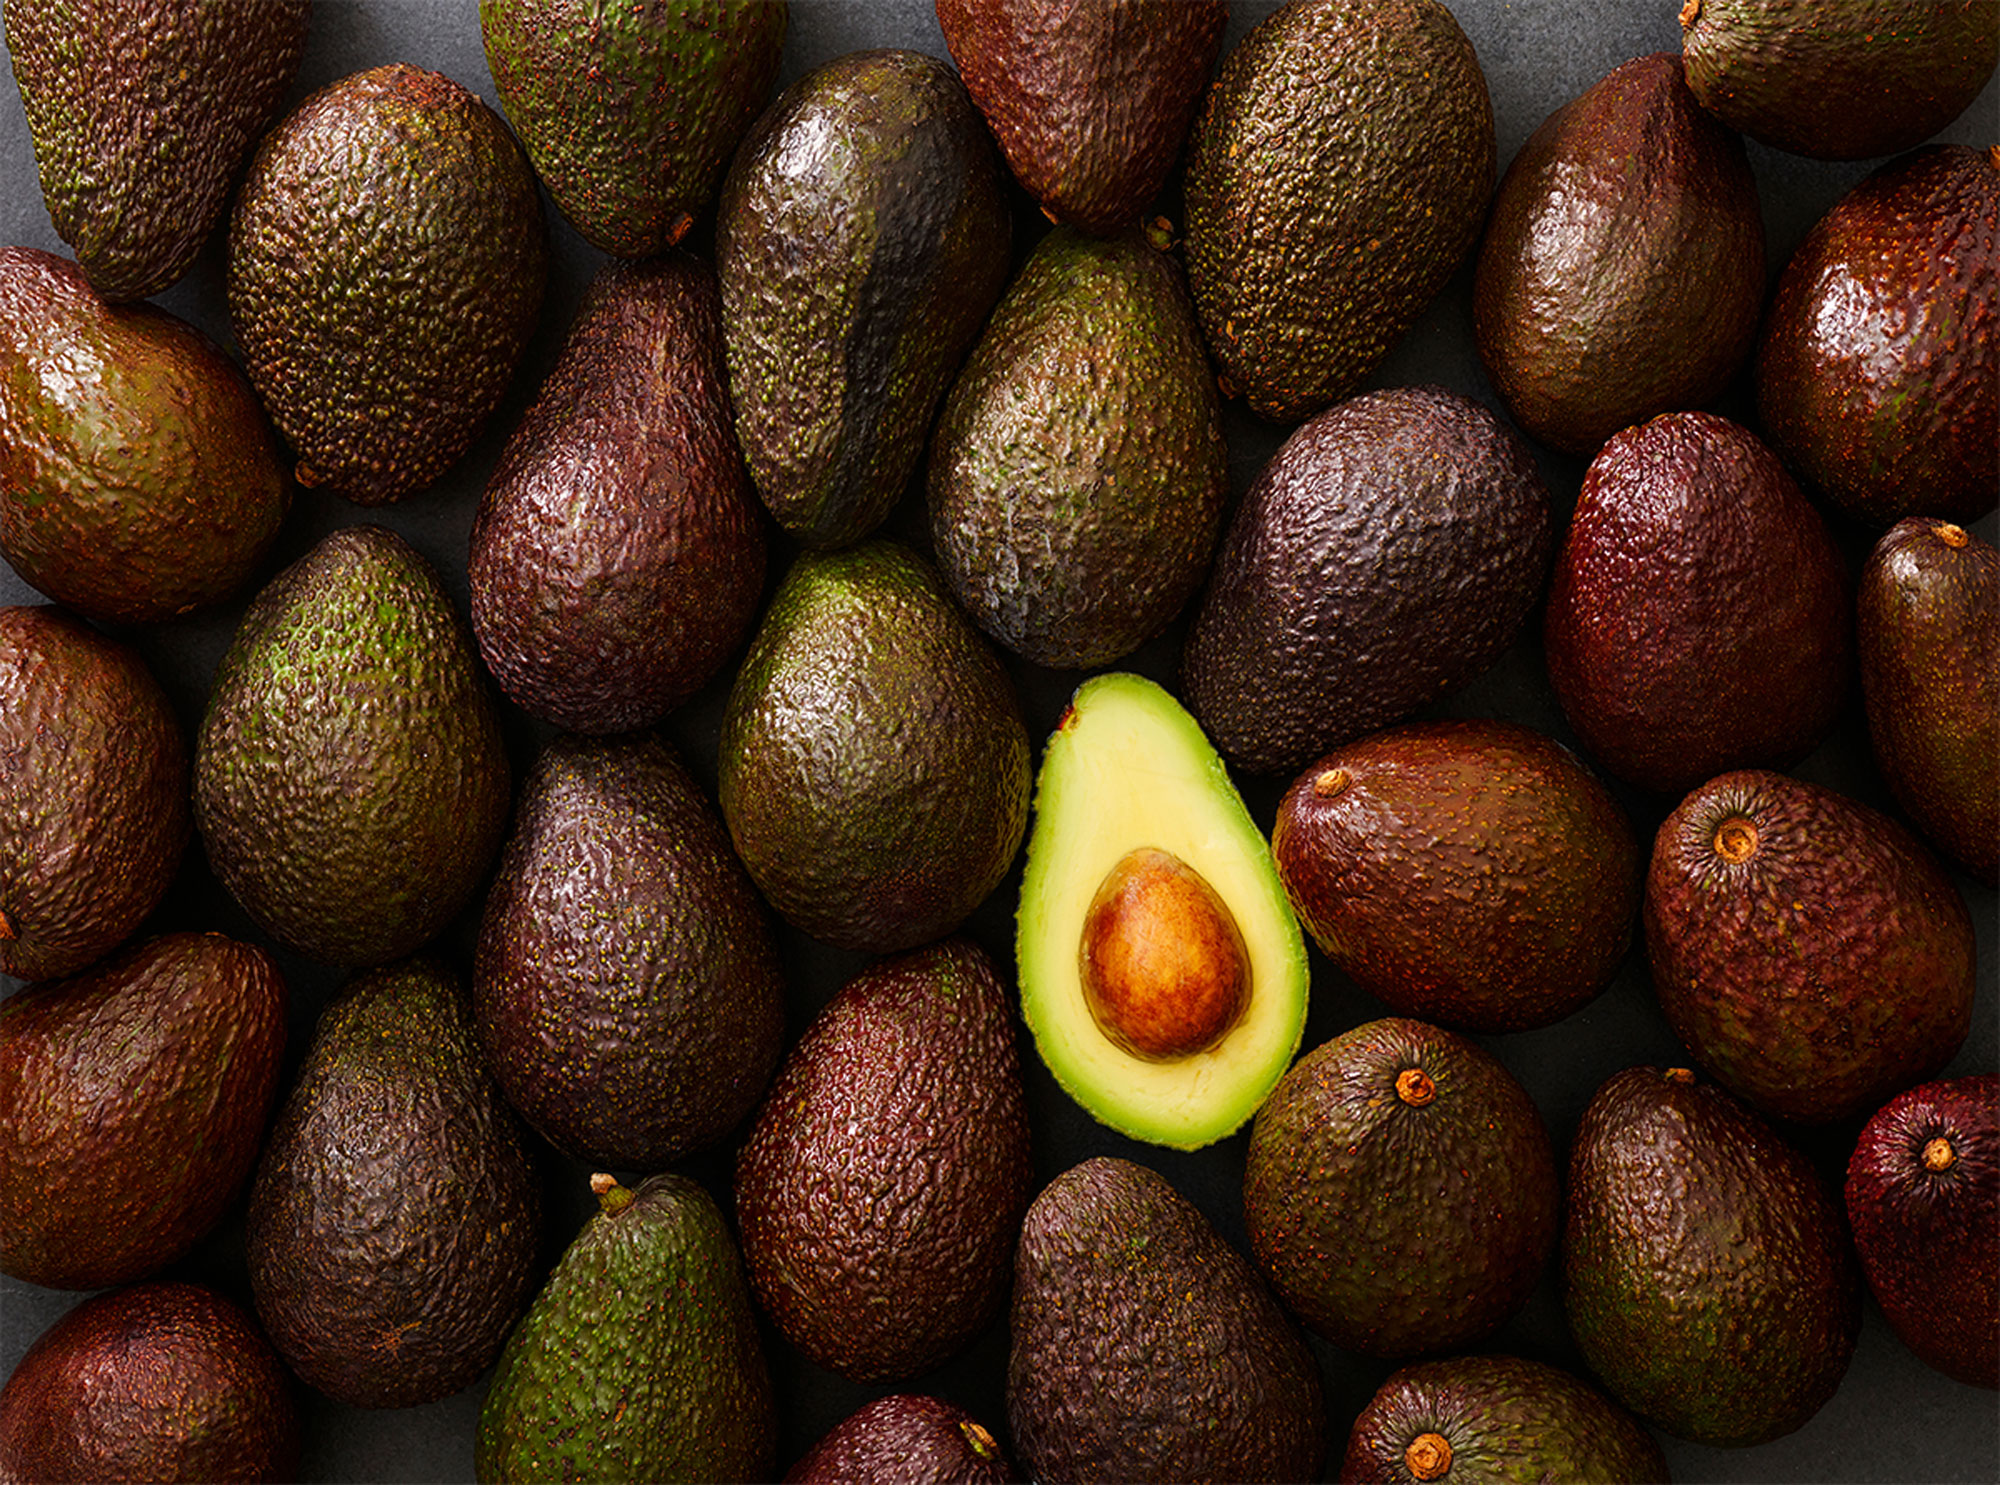 Mexican Hass Avocado Prices Jump 34% Overnight